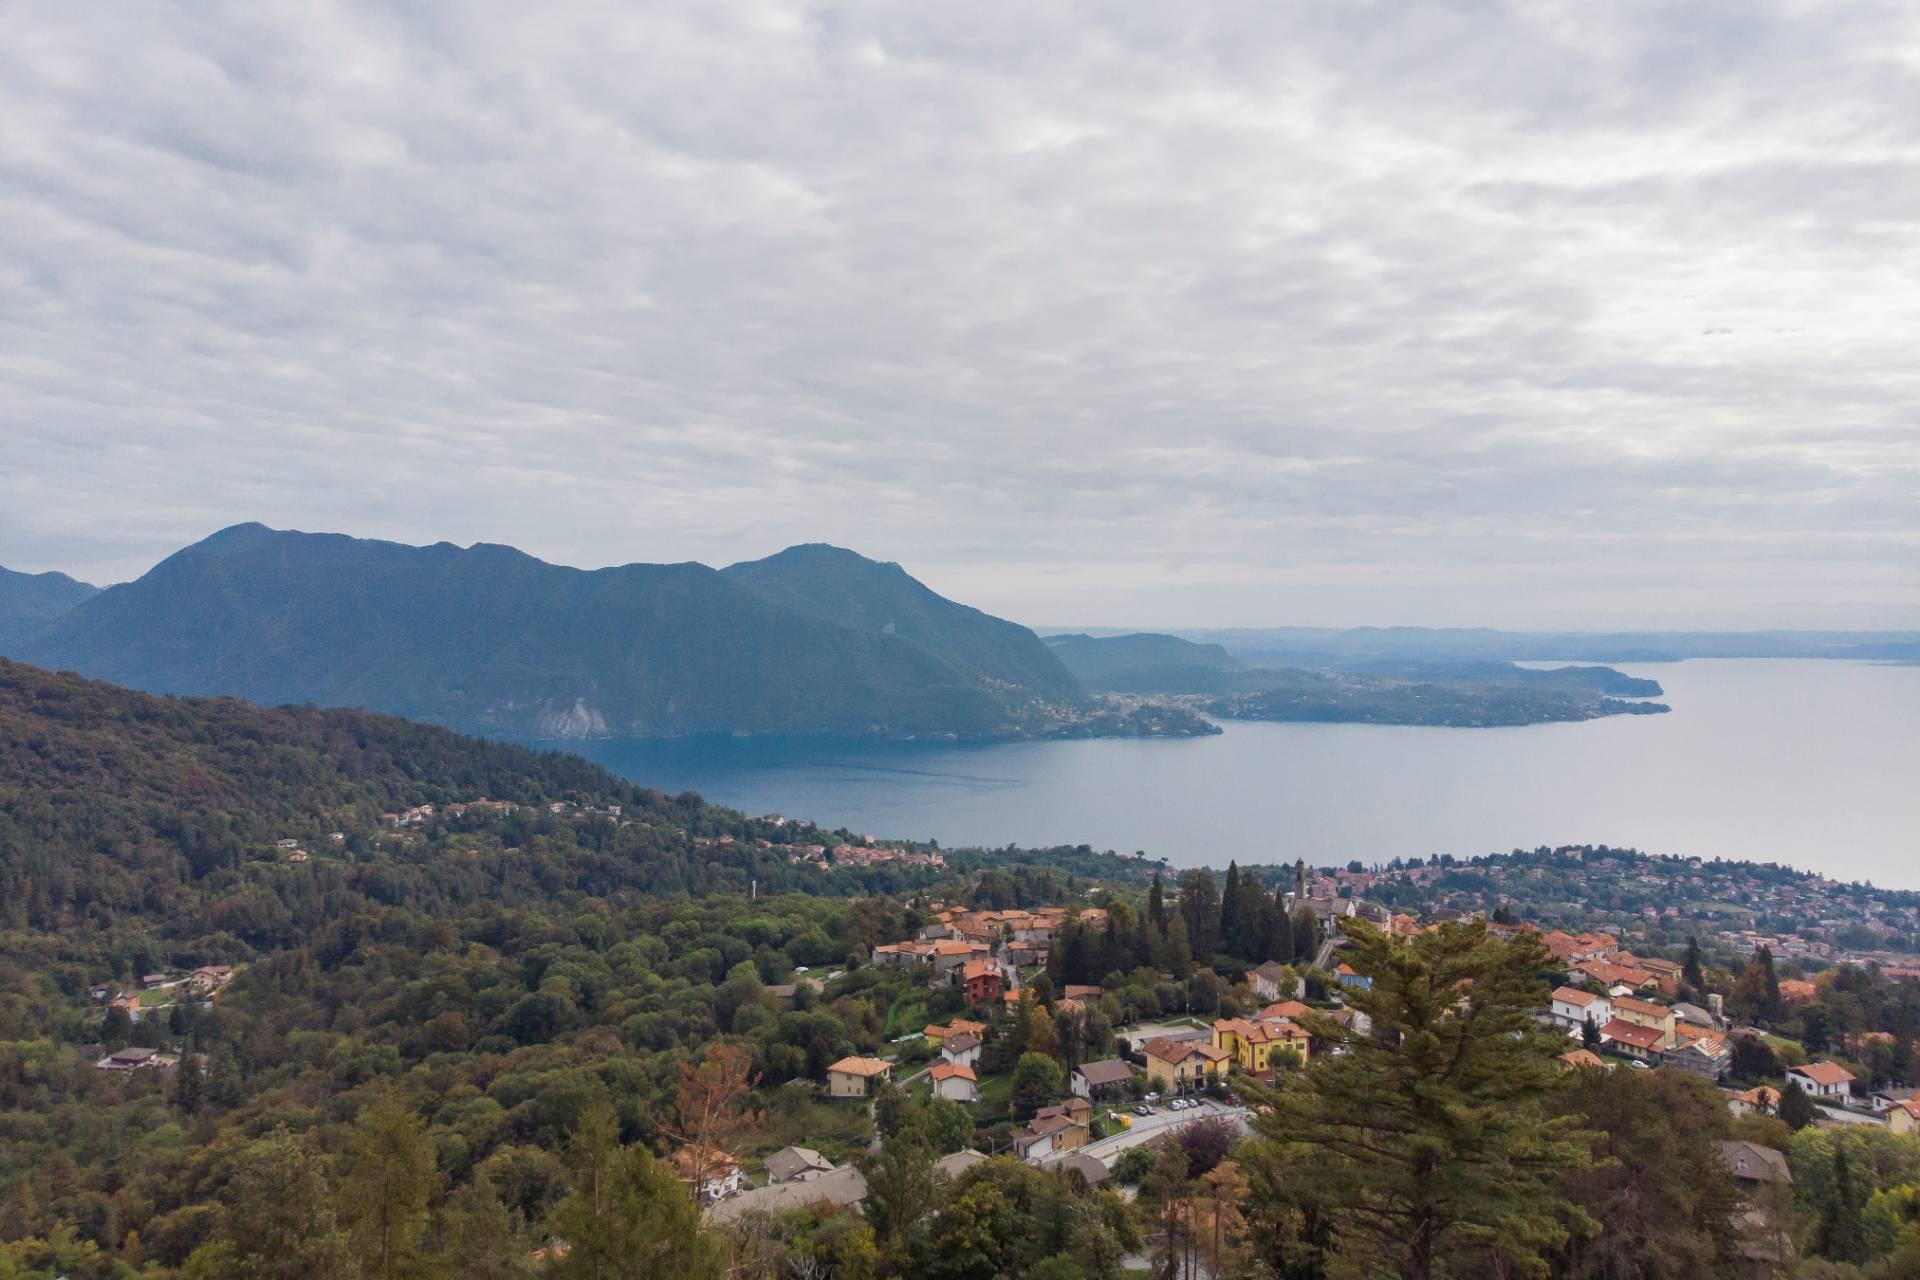 Detached Villa in the hilly area of Verbania with wonderful lake view - 8